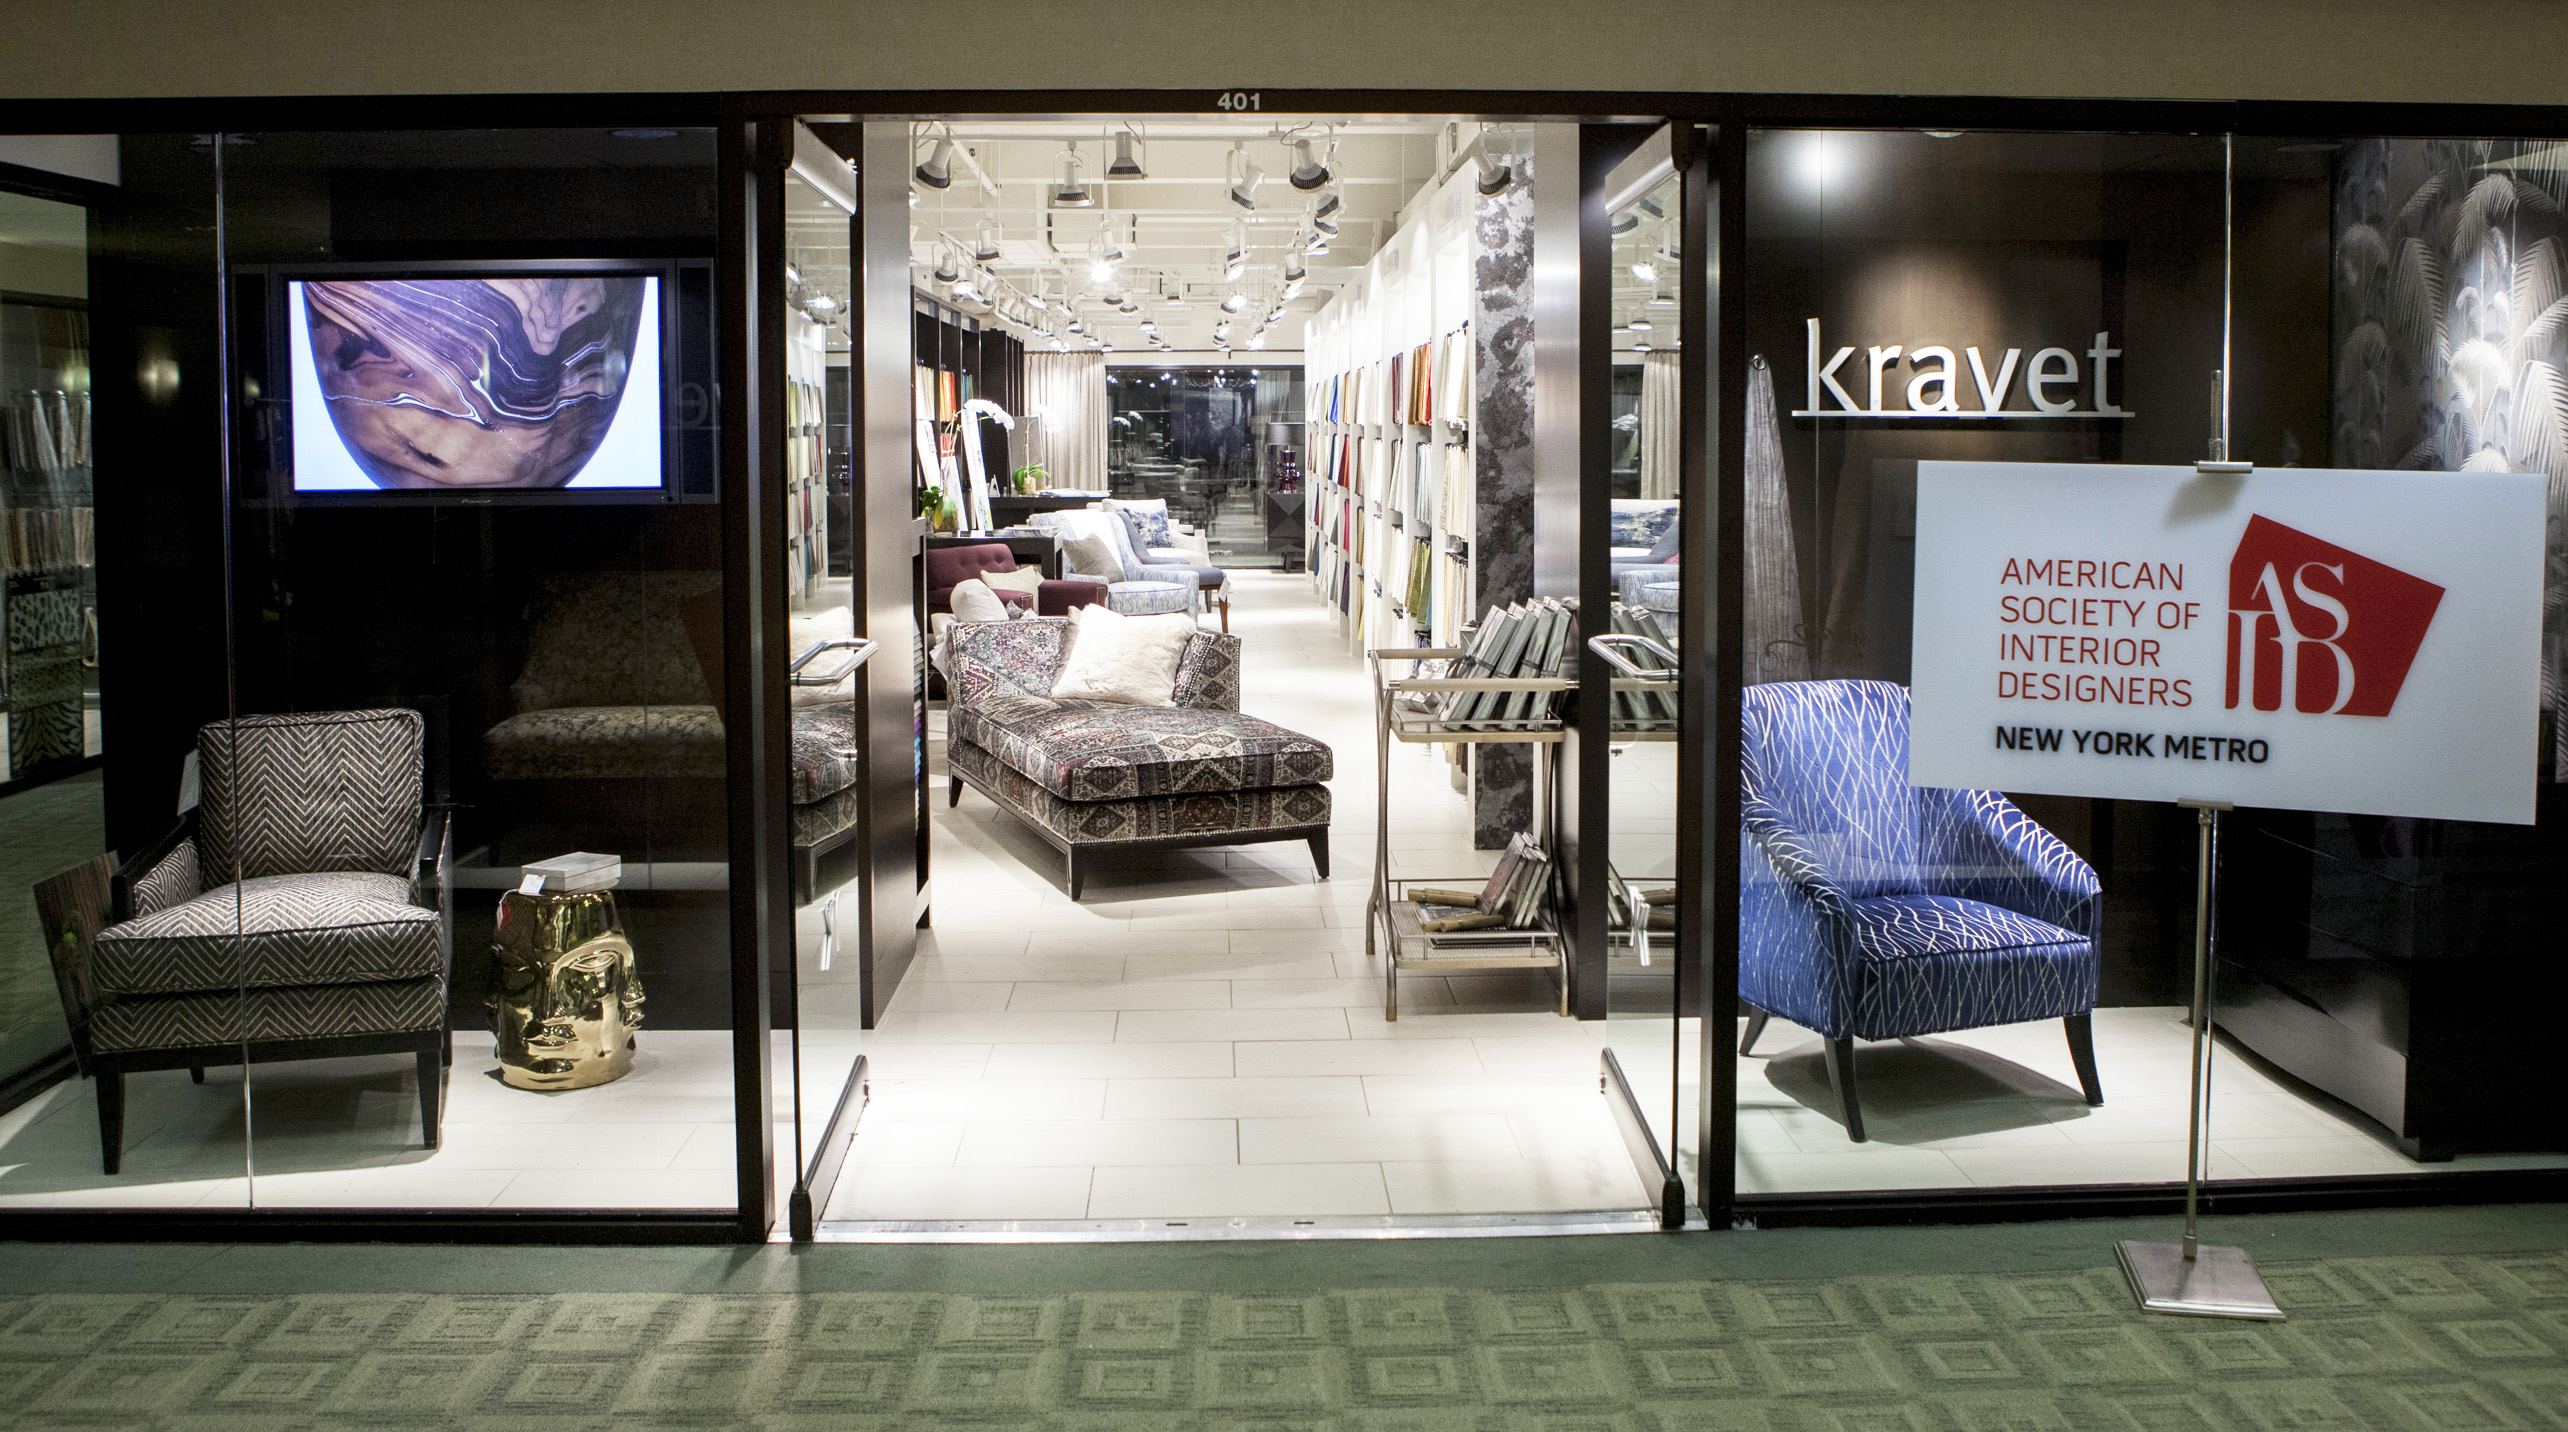 The entrance to the Kravet Showroom at 200 Lex